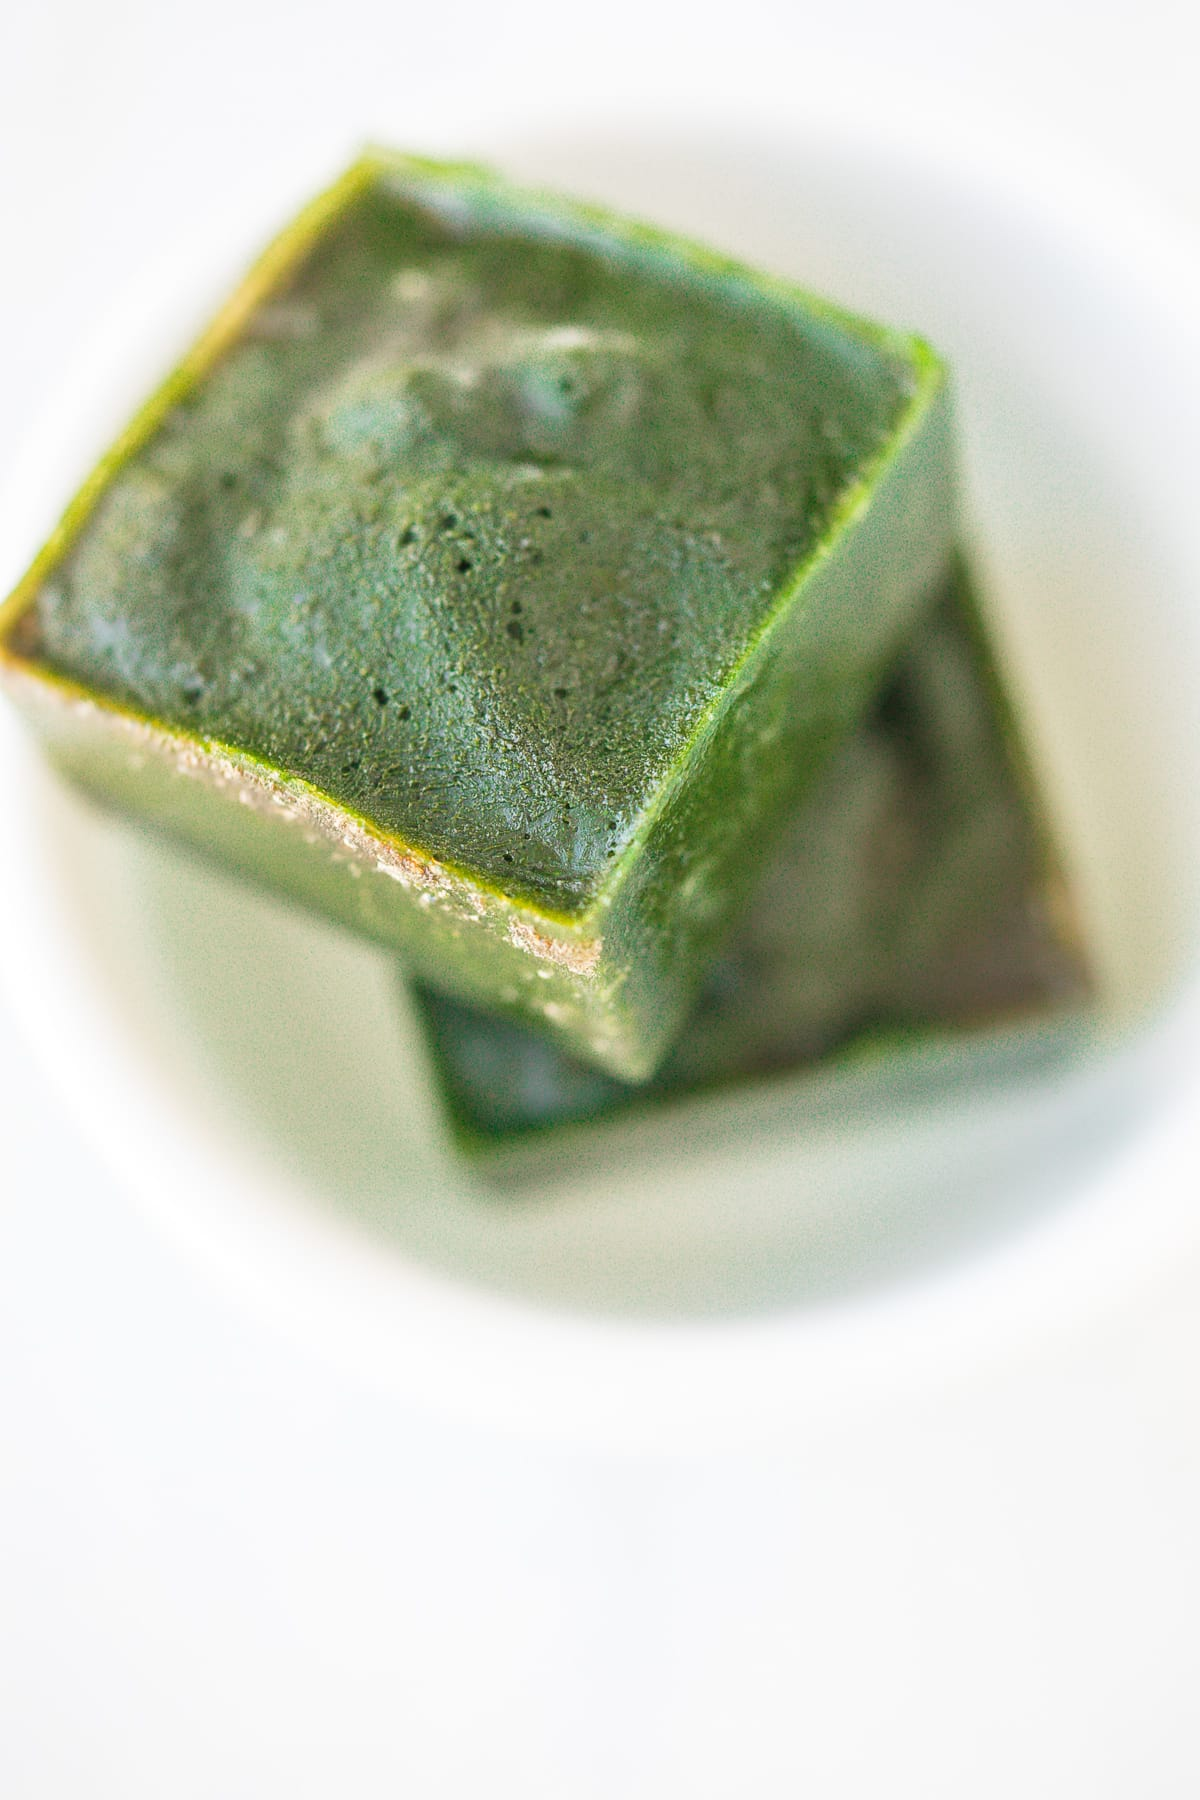 two spinach ice cubes in a white bowl